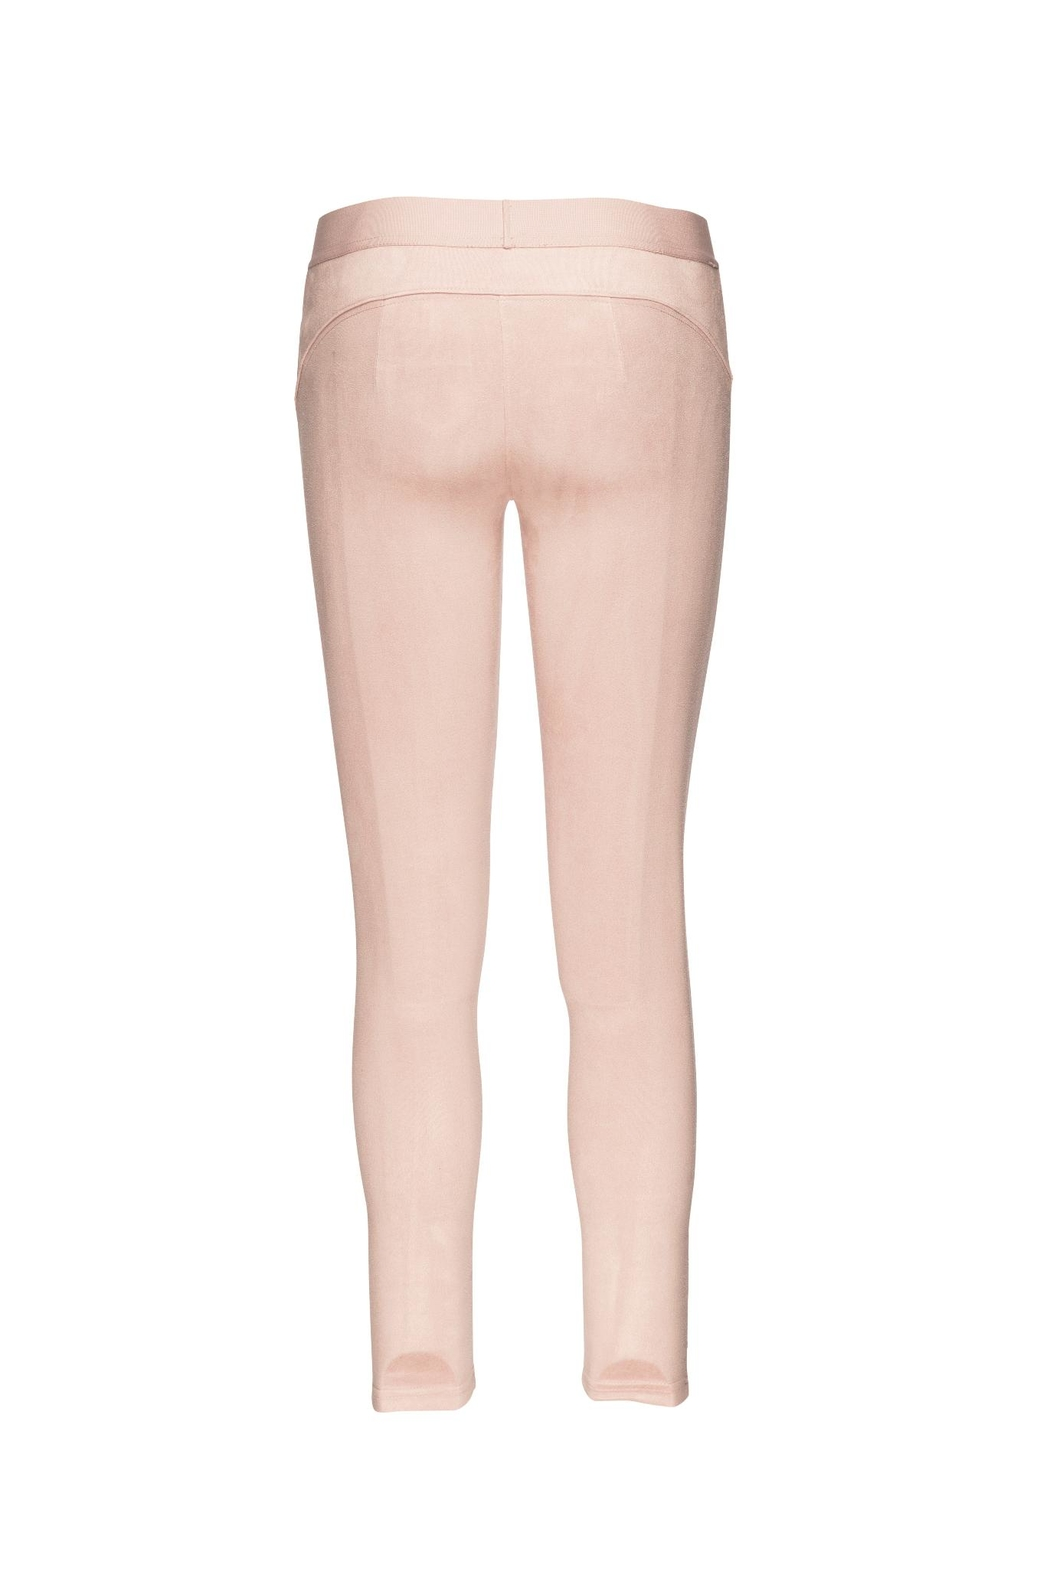 David Lerner New York Micro Suede Opal Jeggings - Front Full Image